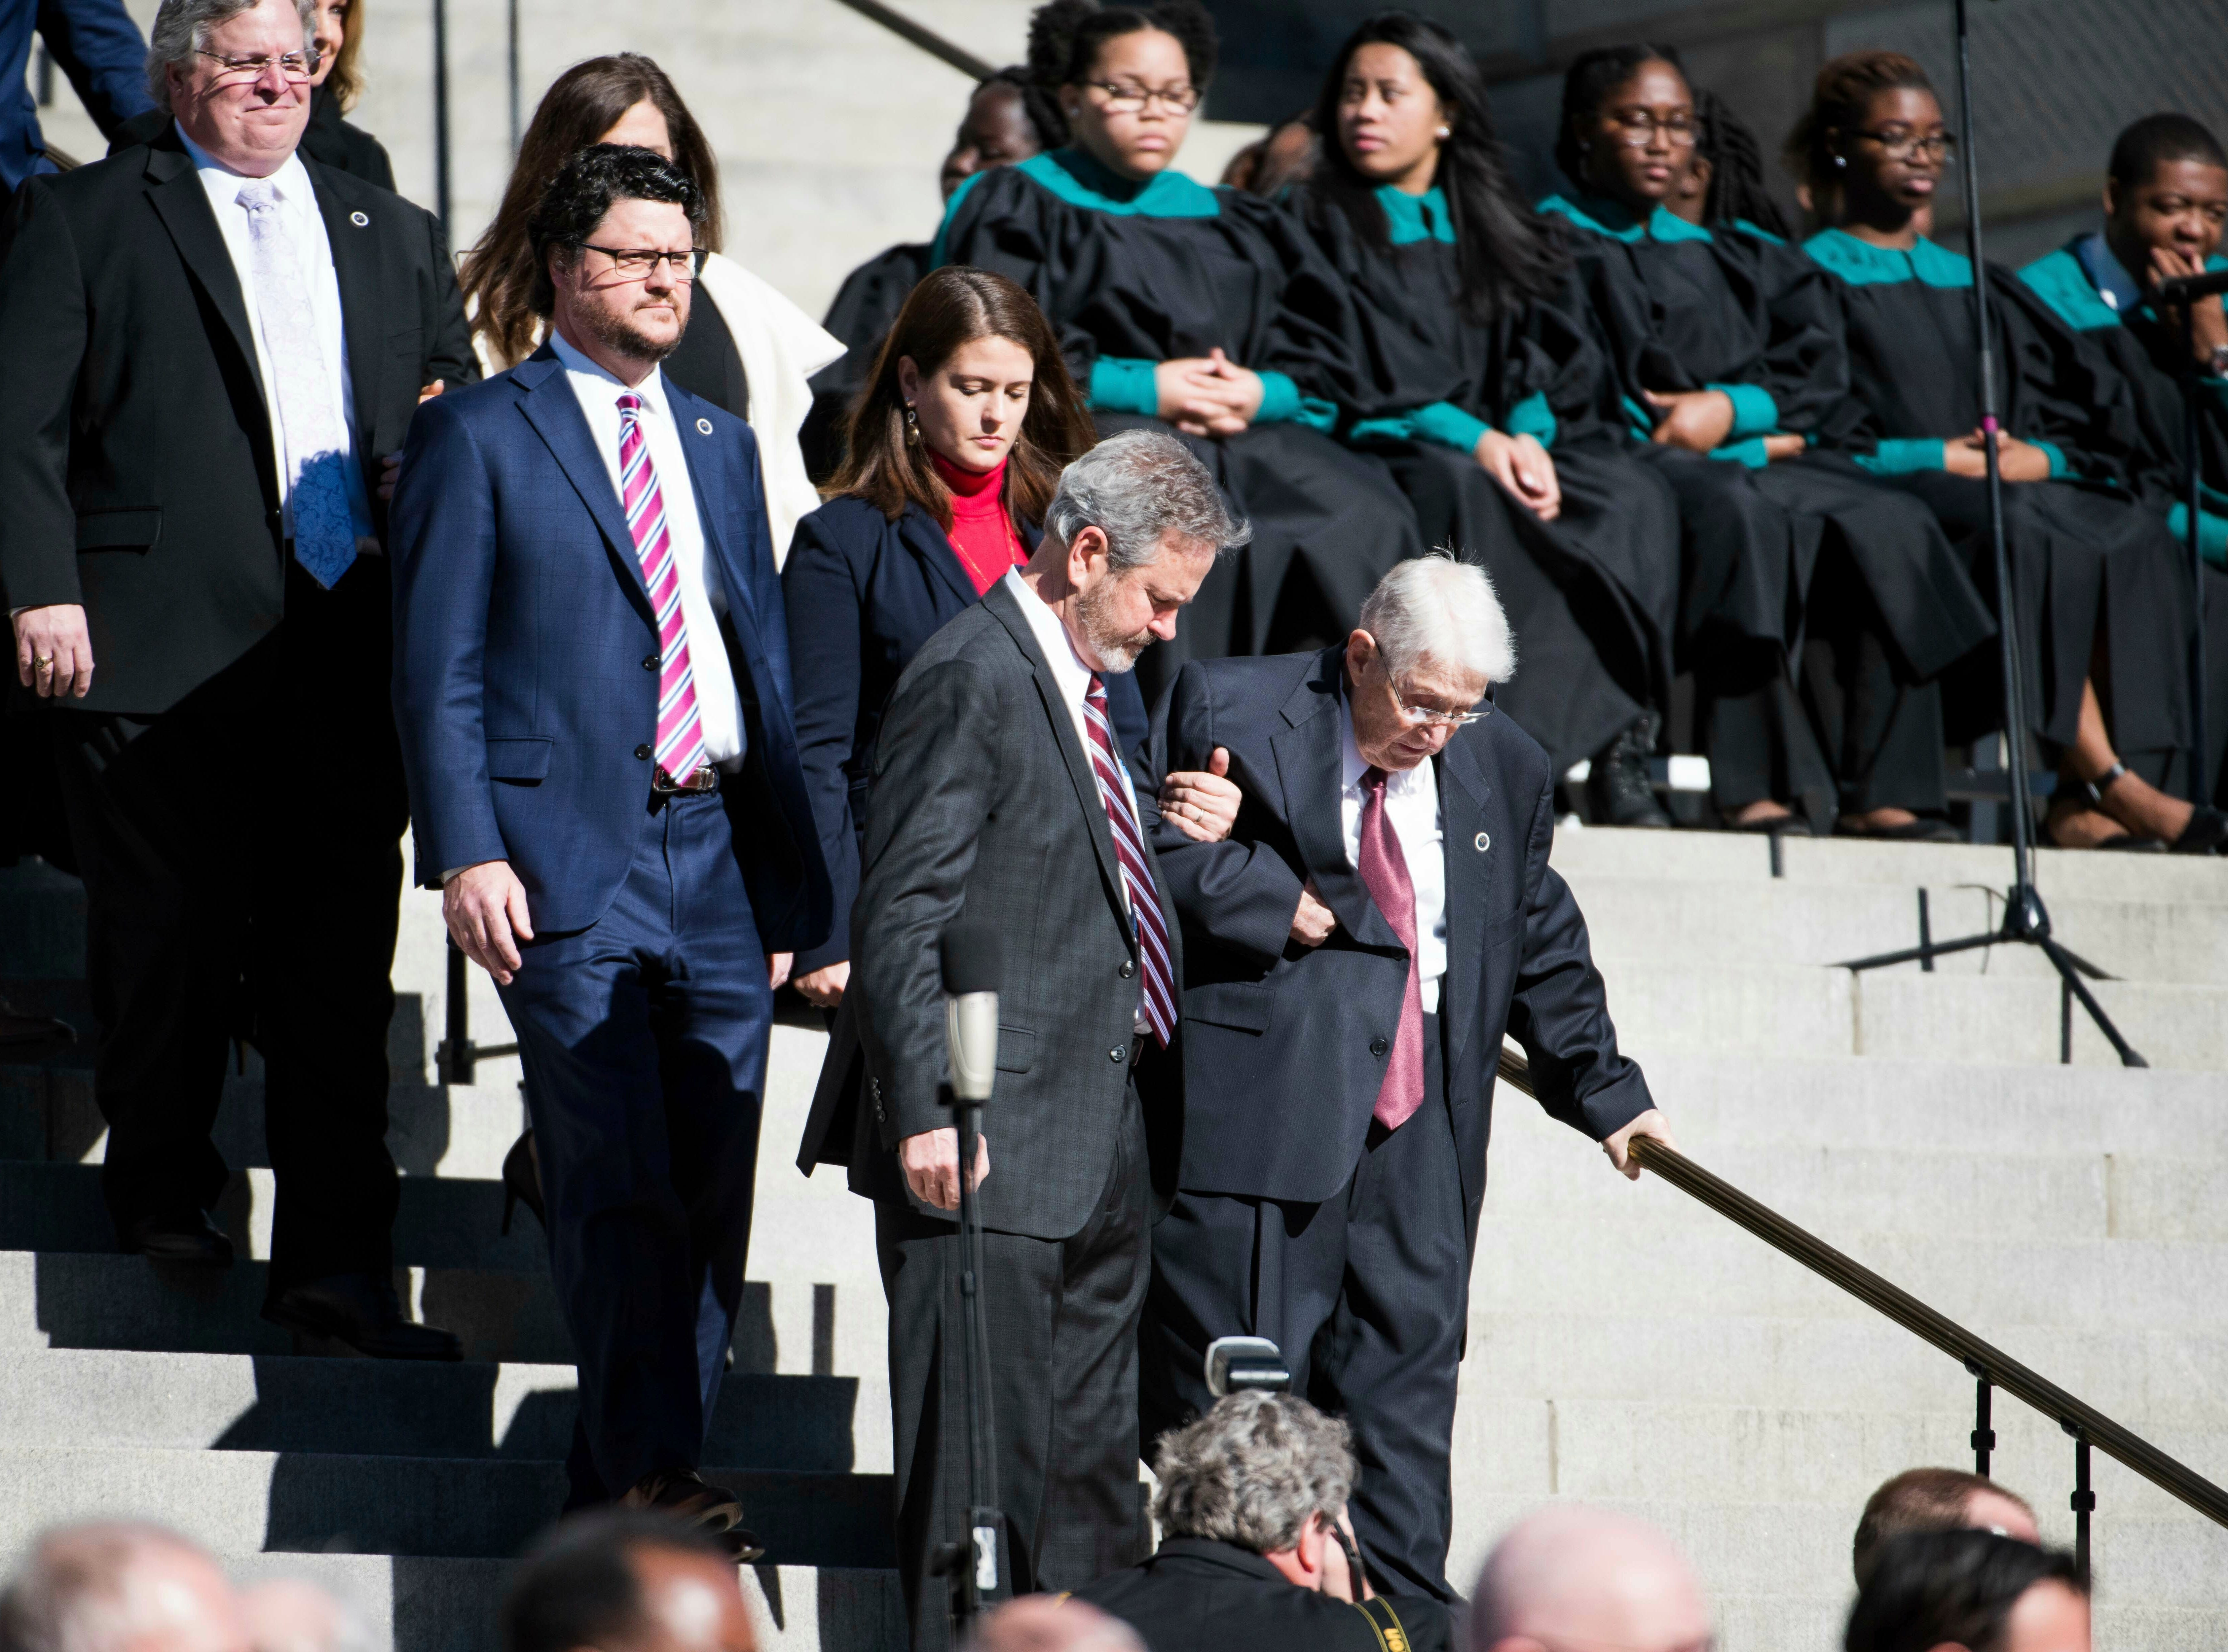 South Carolina House of Representatives Chaplin Charles Seastrunk, right, is helped down the steps at the South Carolina Statehouse as House Majority Rep. Gary Simrill, R-York, and his wife Mary Dobson, follow behind during inauguration ceremonies for Governor Henry McMaster, Wednesday, Jan. 9, 2019, in Columbia, S.C. (AP Photo/Sean Rayford)